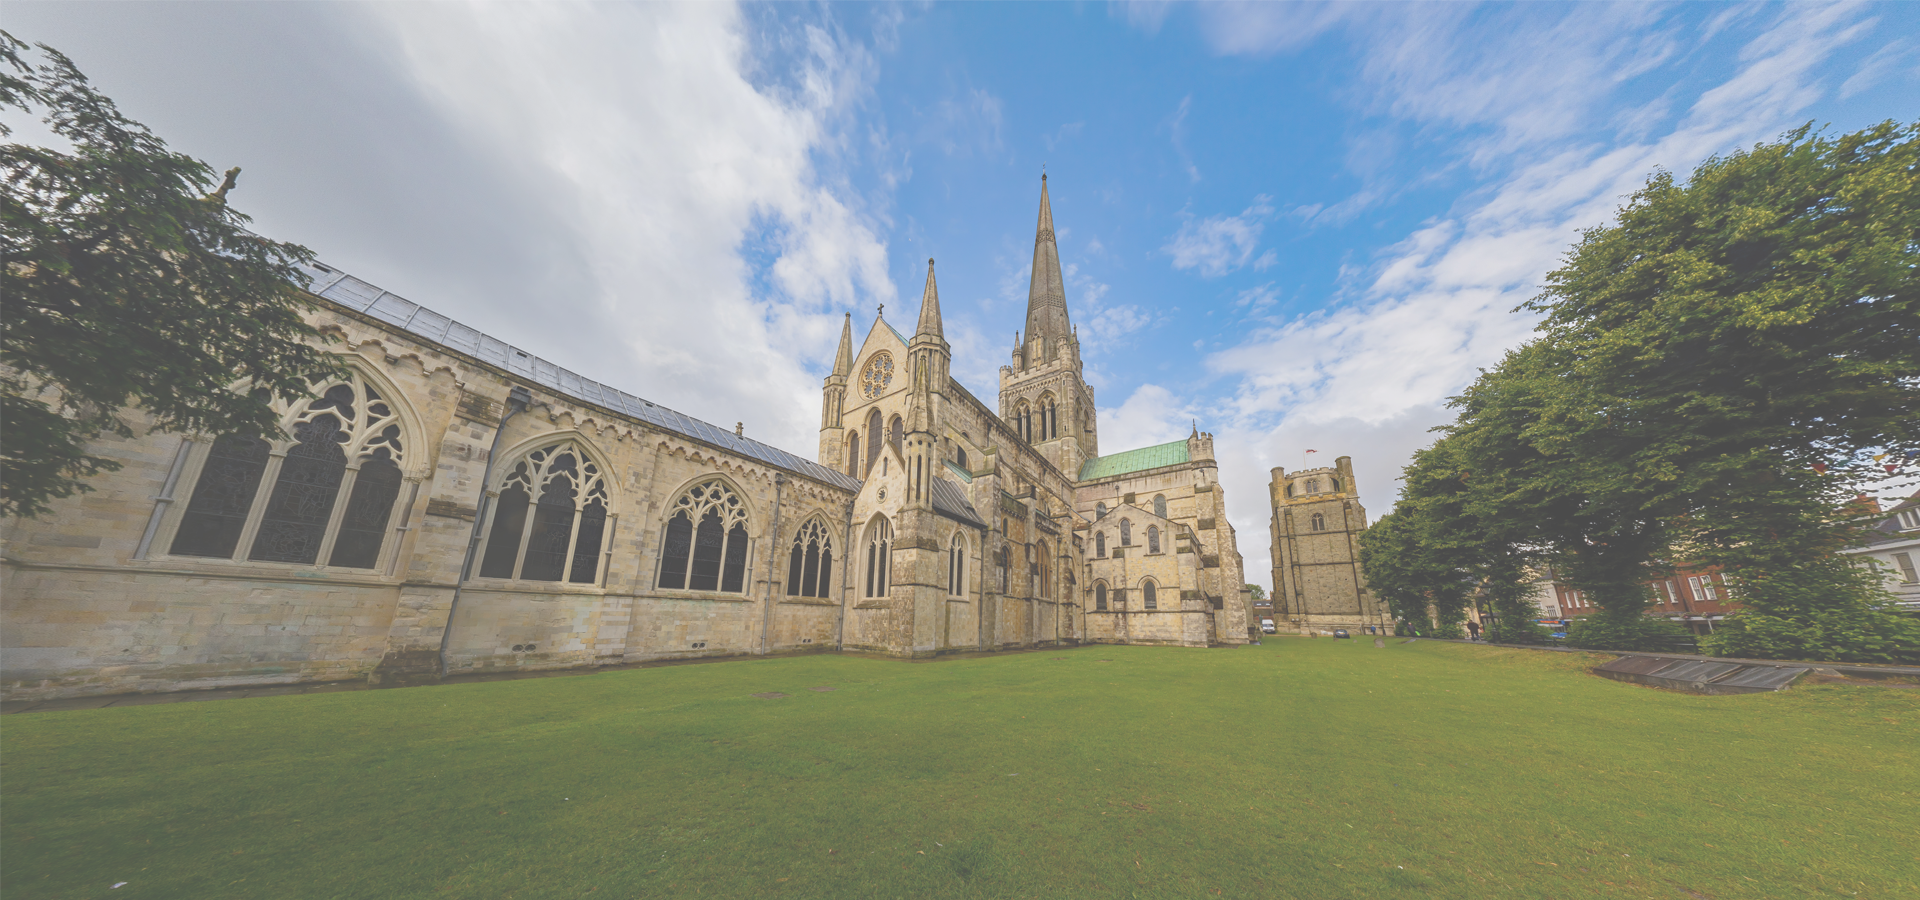 Peer-to-peer advisory in Chichester, West Sussex, England, Great Britain